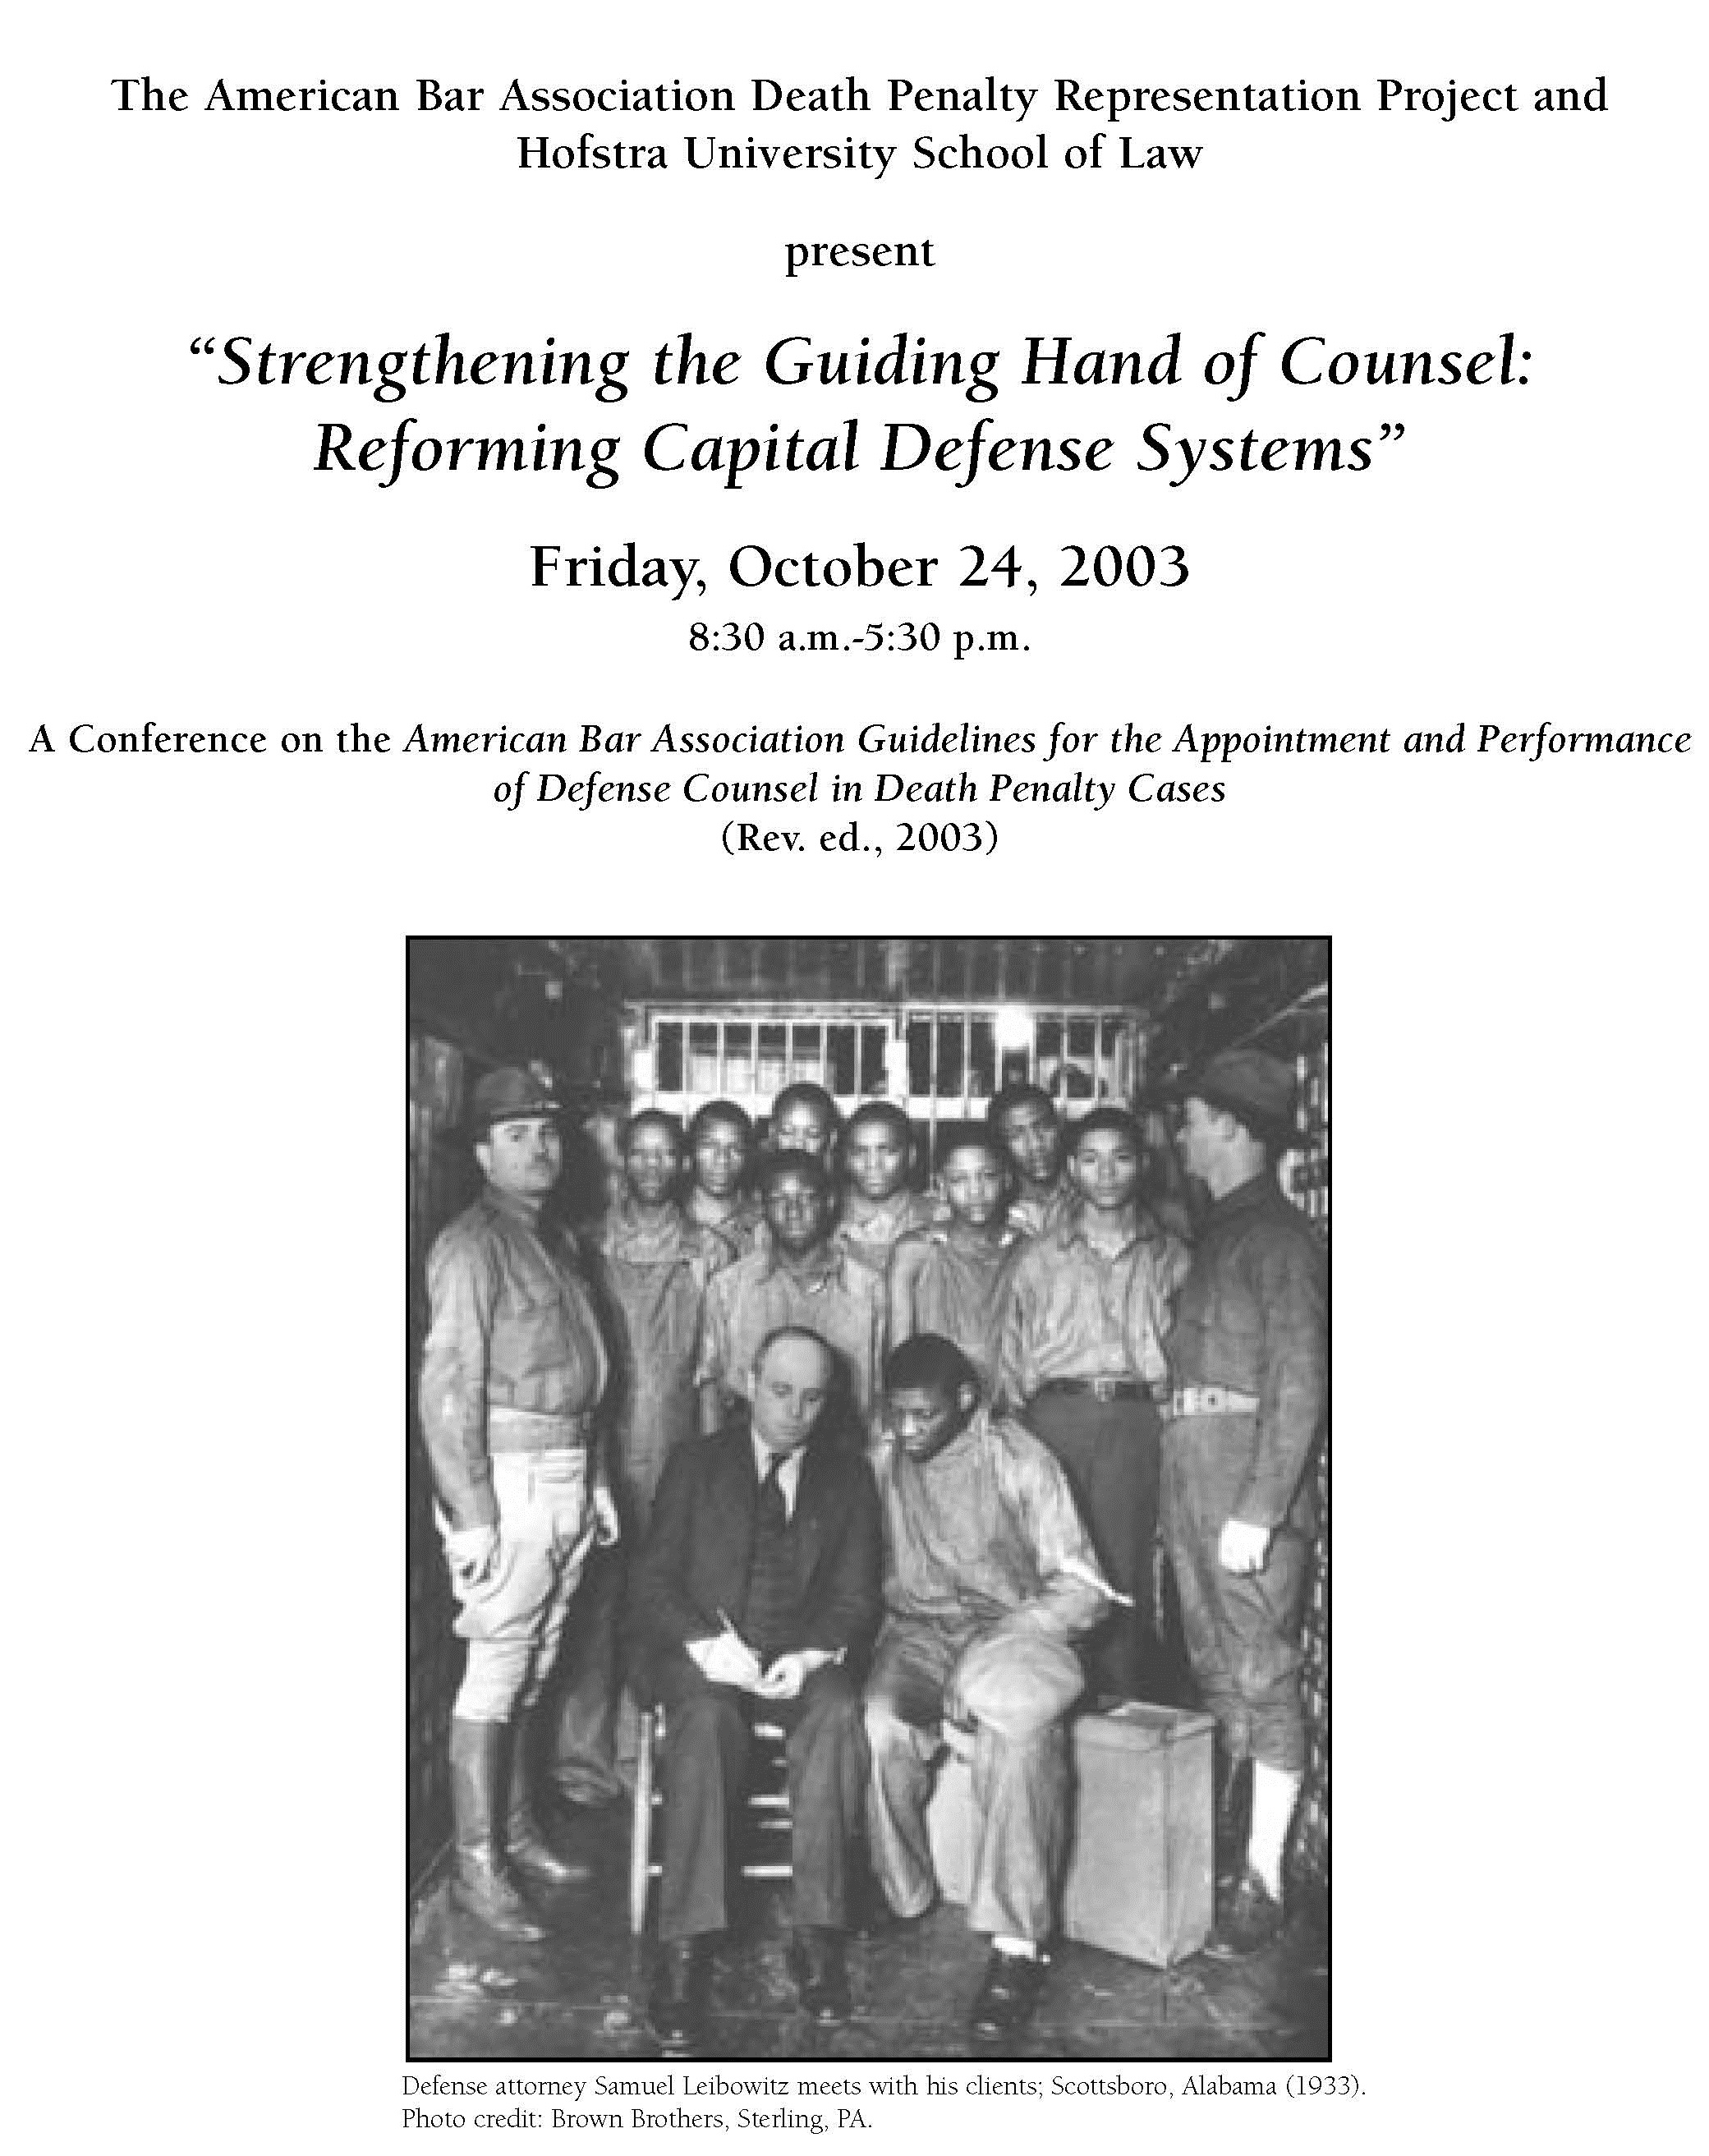 """Strengthening the Guiding Hand of Counsel: Reforming Capital Defense Systems"" : A Conference on the American Bar Association Guidelines for the Appointment and Performance of Defense Counsel in Death Penalty Cases (2003)"